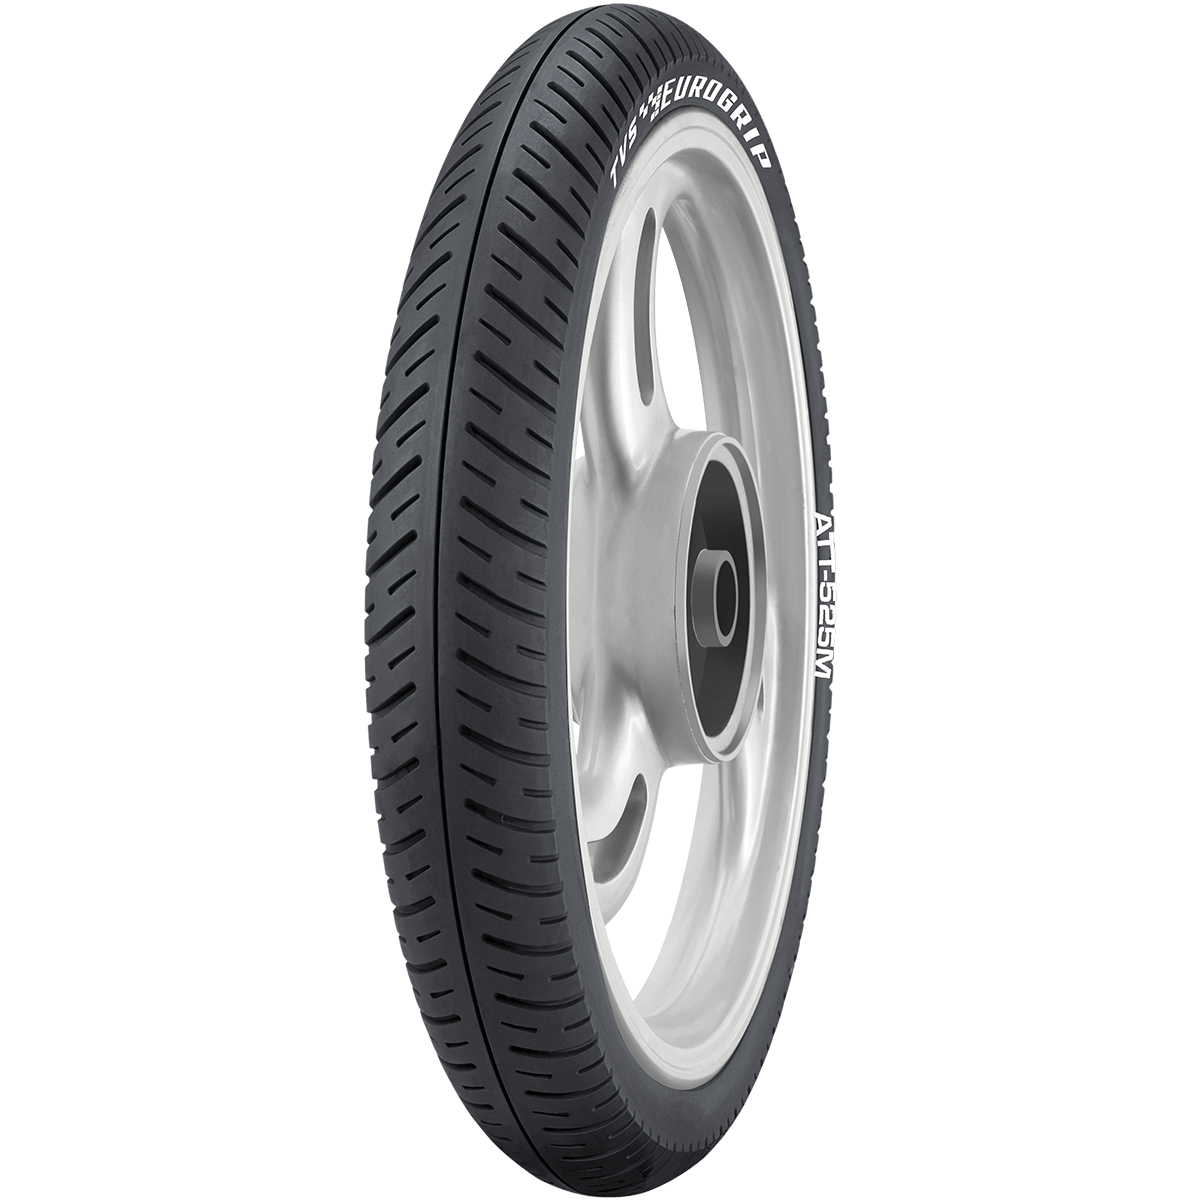 TVS ATT 525 2.75 17 Requires Tube 41 P Rear Two-Wheeler Tyre